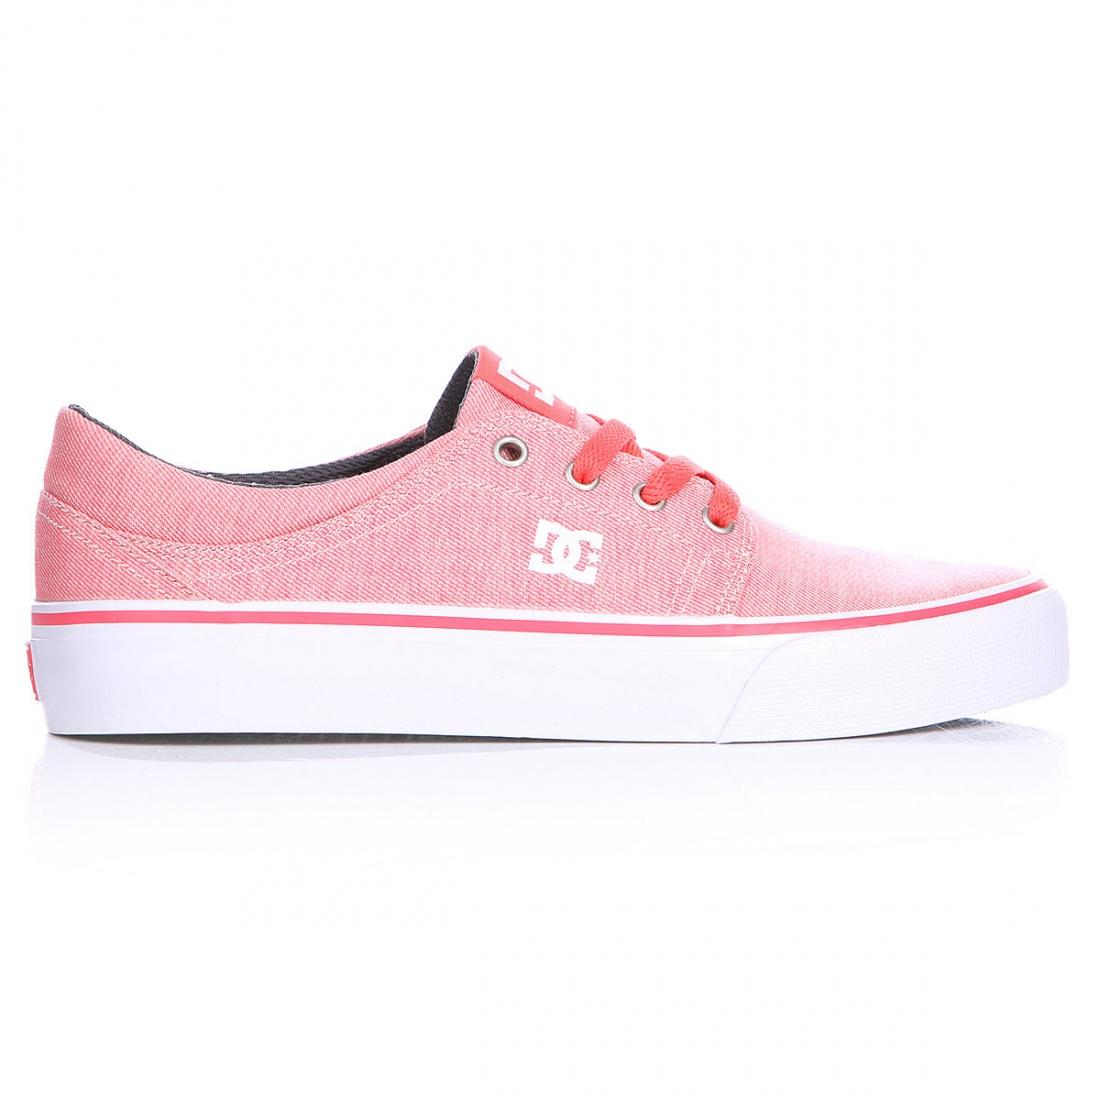 DC SHOES Кеды DC shoes Trase TX SE PINK/RASPBERRY US 5 кеды кроссовки высокие dc council mid tx stone camo